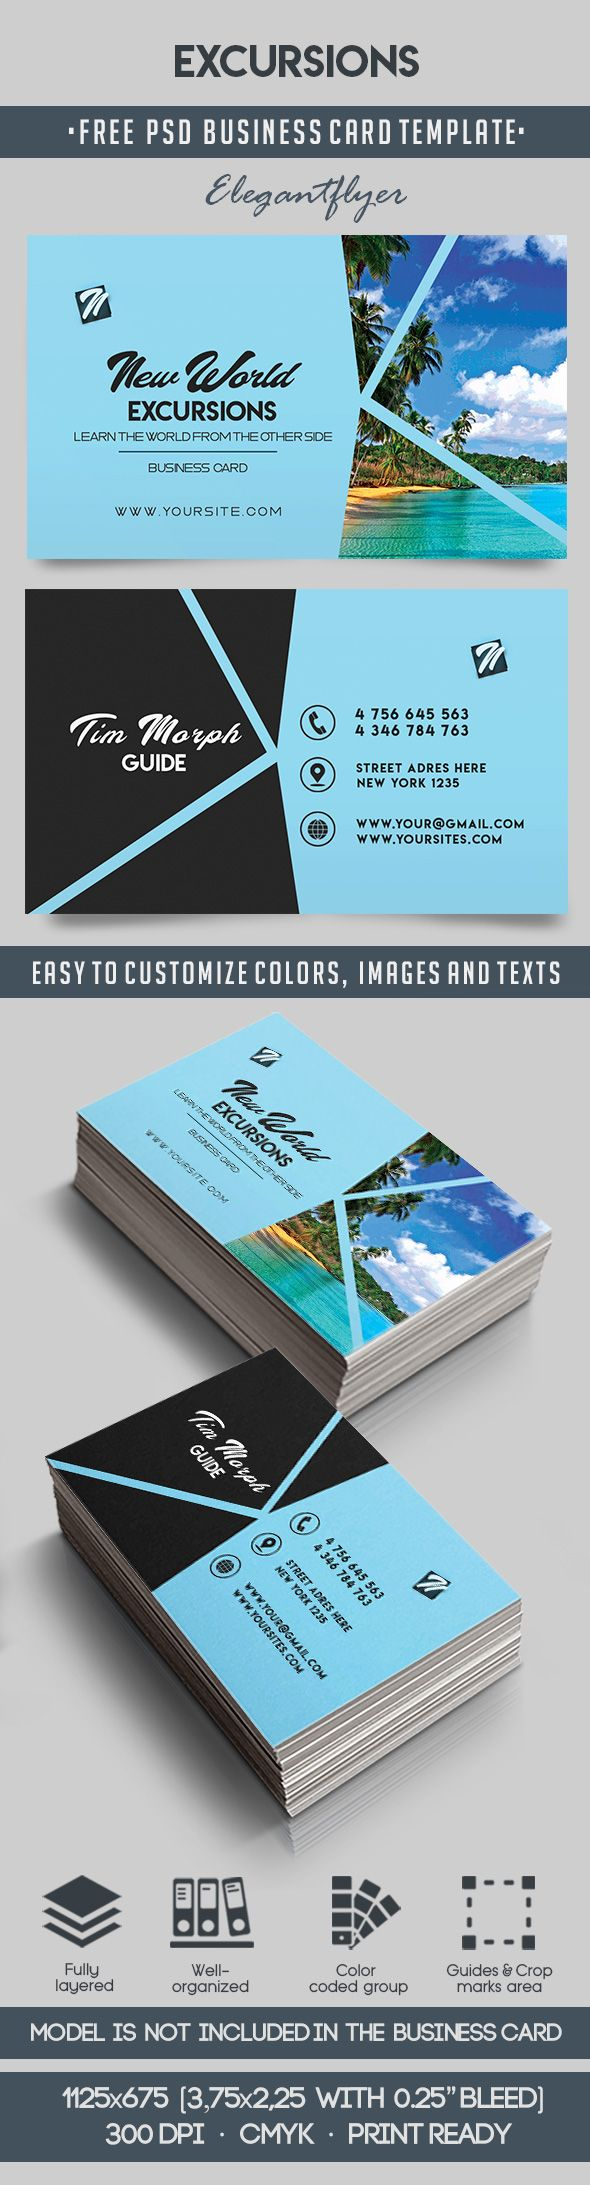 Excursions – Free Business Card Templates PSD